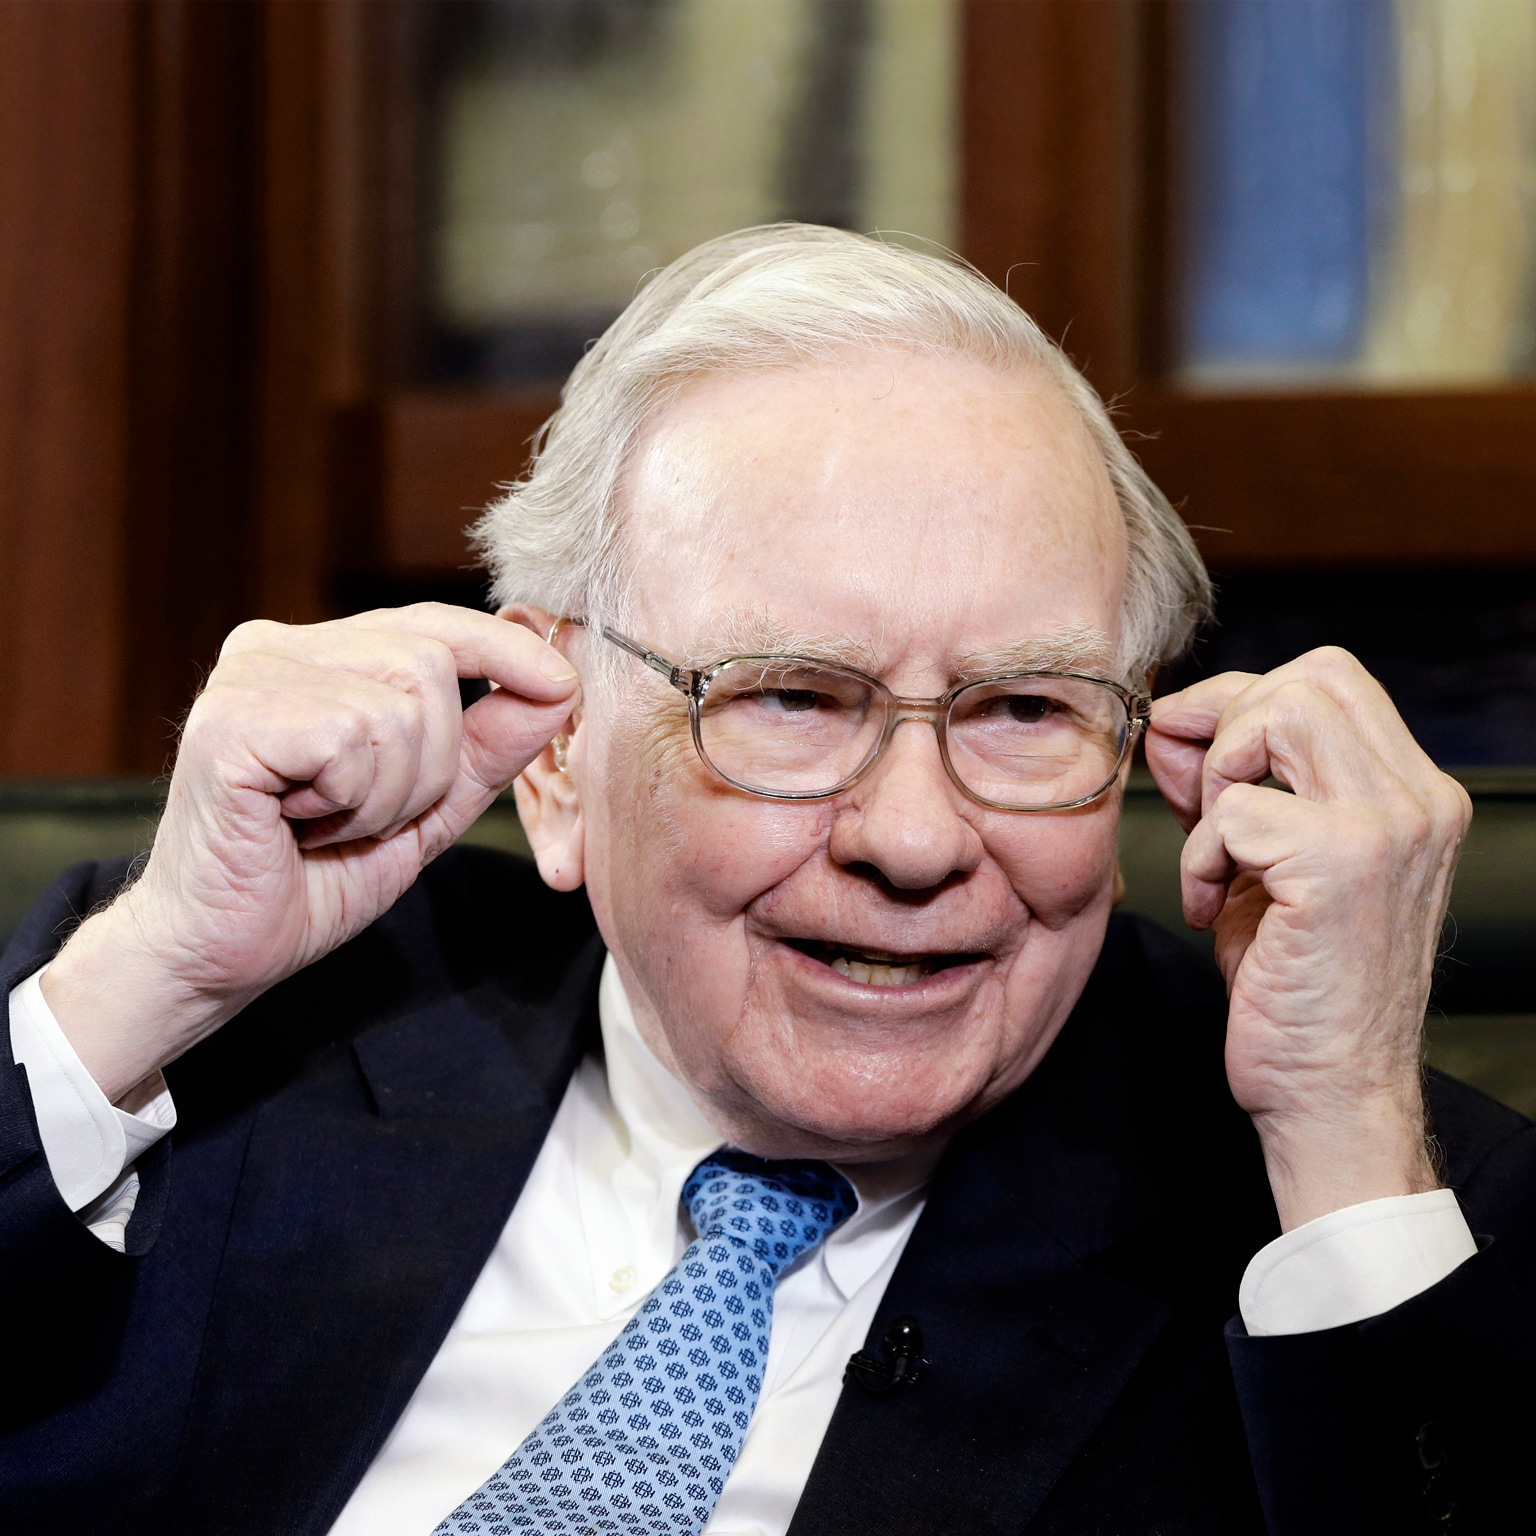 Celebrating Warren Buffett on his 90th birthday | McKinsey